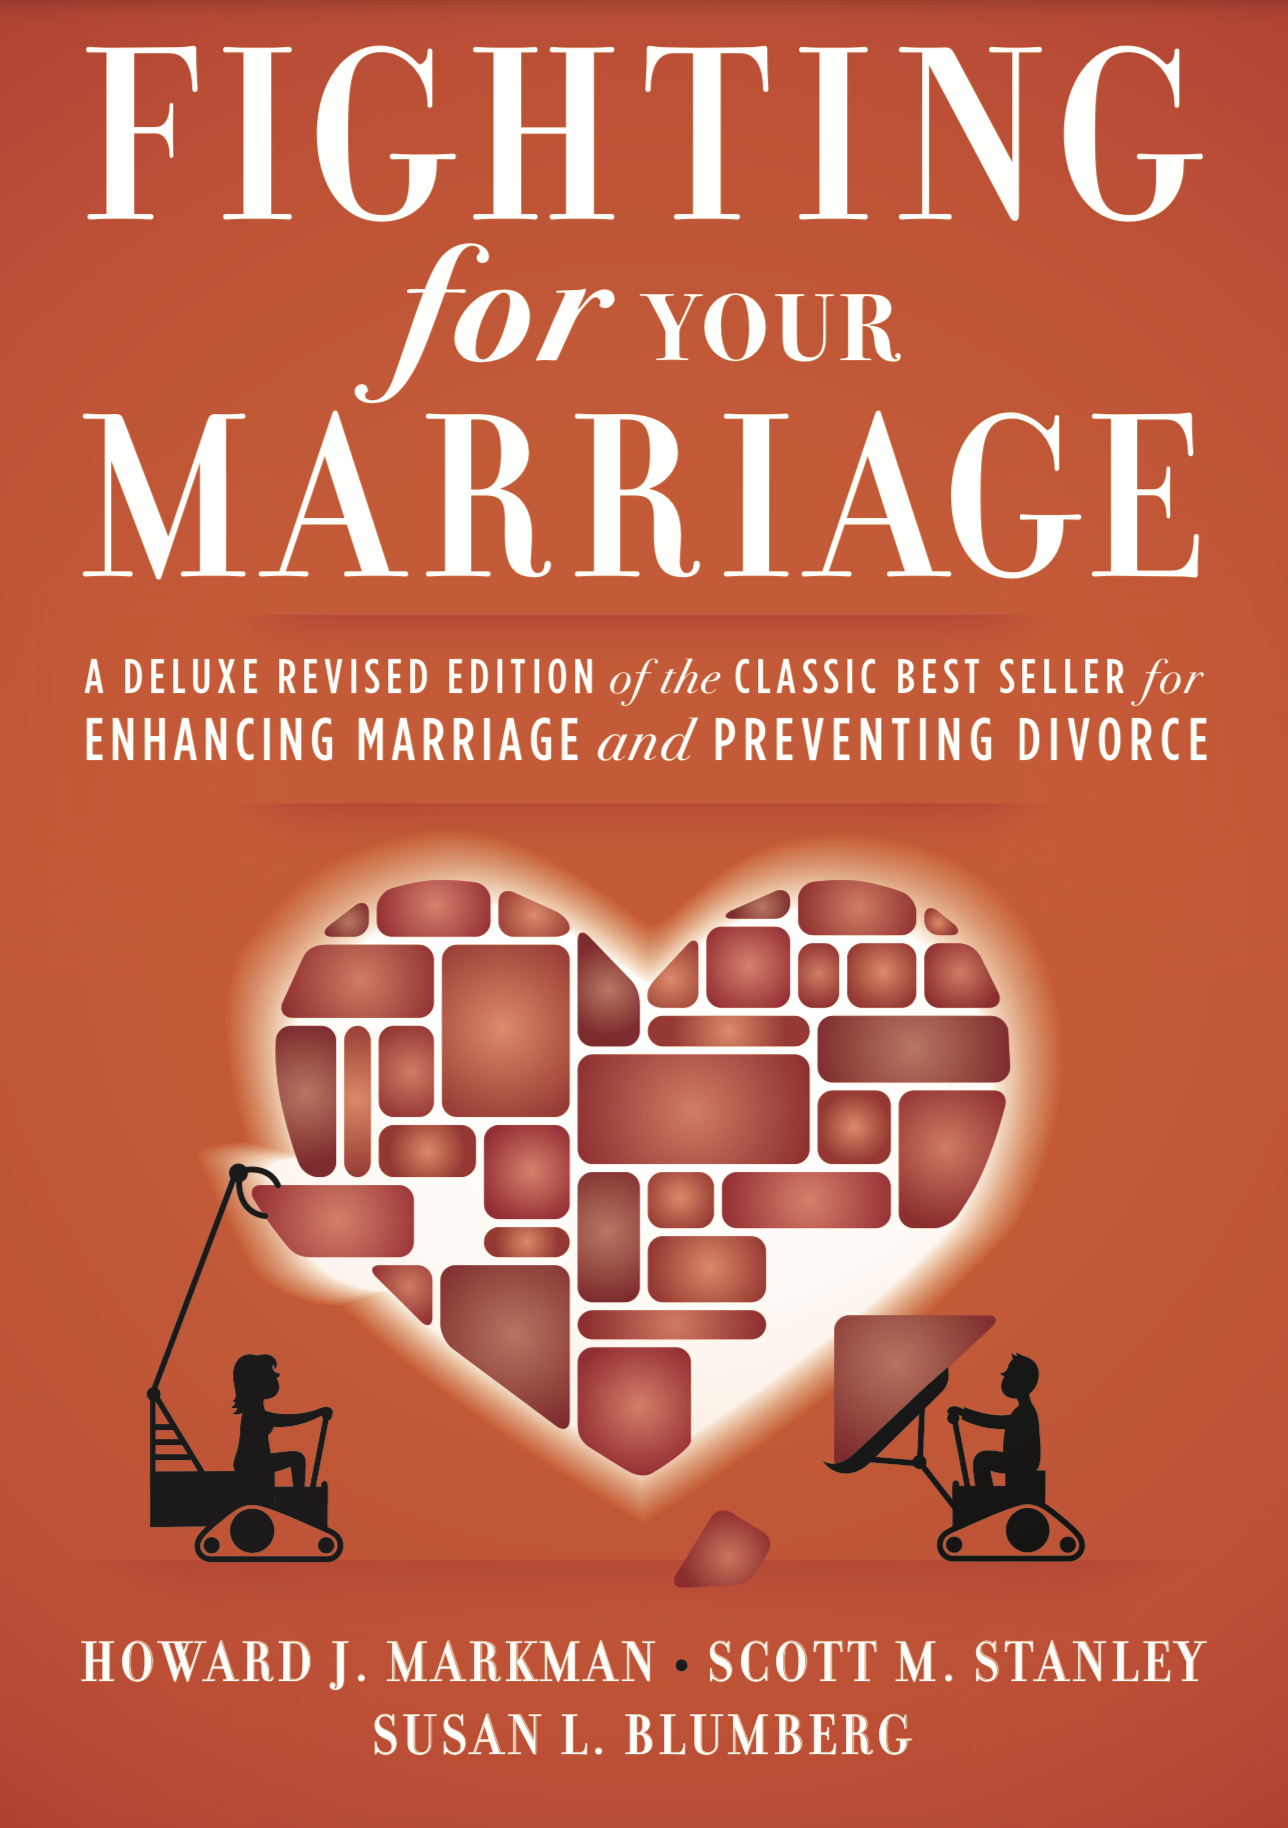 """Fighting for your marriage"" book cover Scott Stanley."